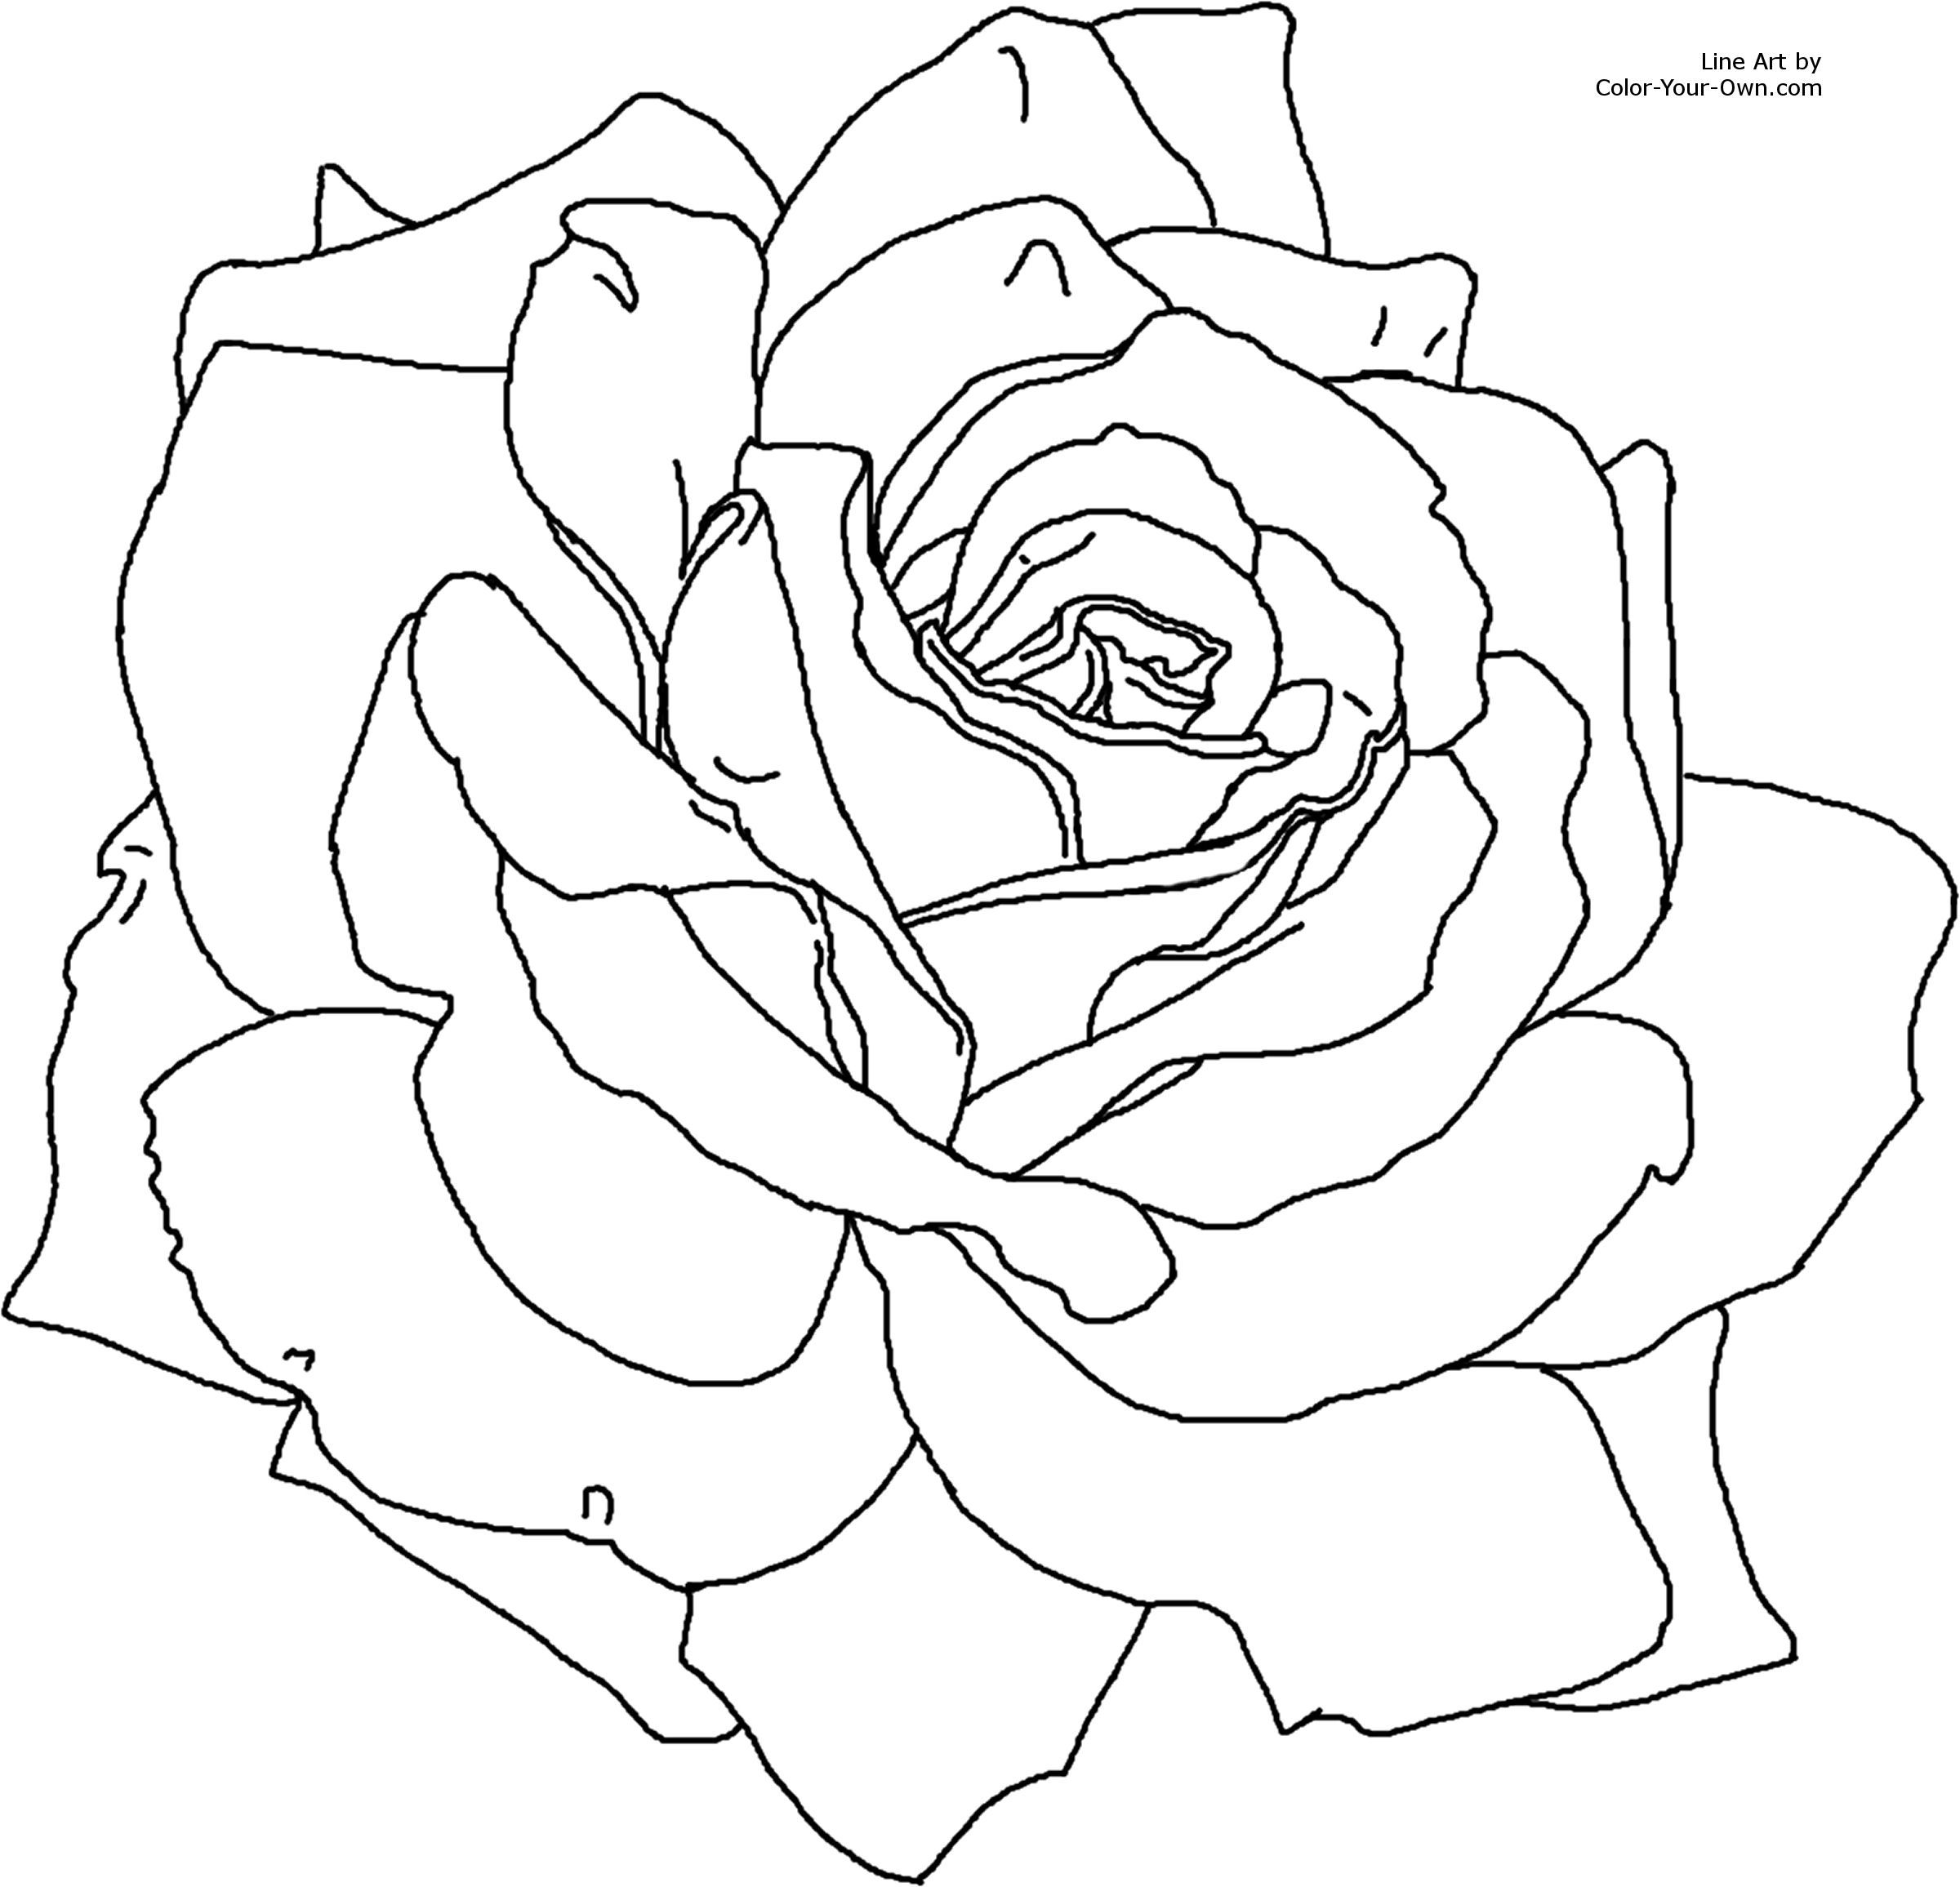 Mothers day coloring sheets for sunday school - Flower Page Printable Coloring Sheets For The 8 5 X 11 Printable Size Click Here